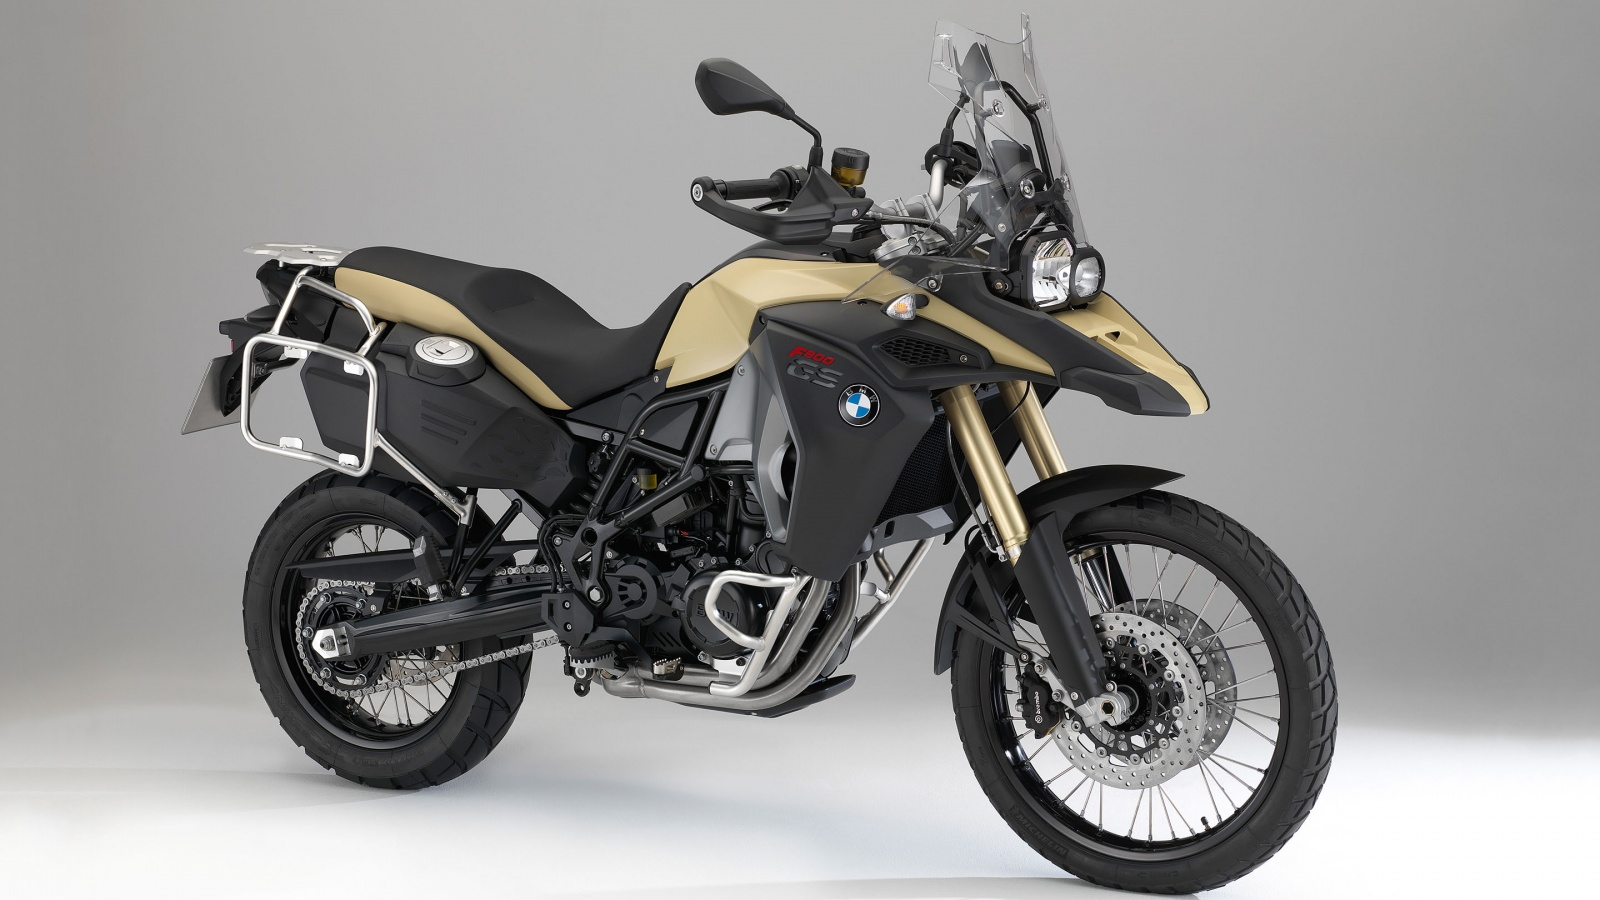 BMW F 800 GS Adventure 2016 Wallpapers - 1600x900 - 333772